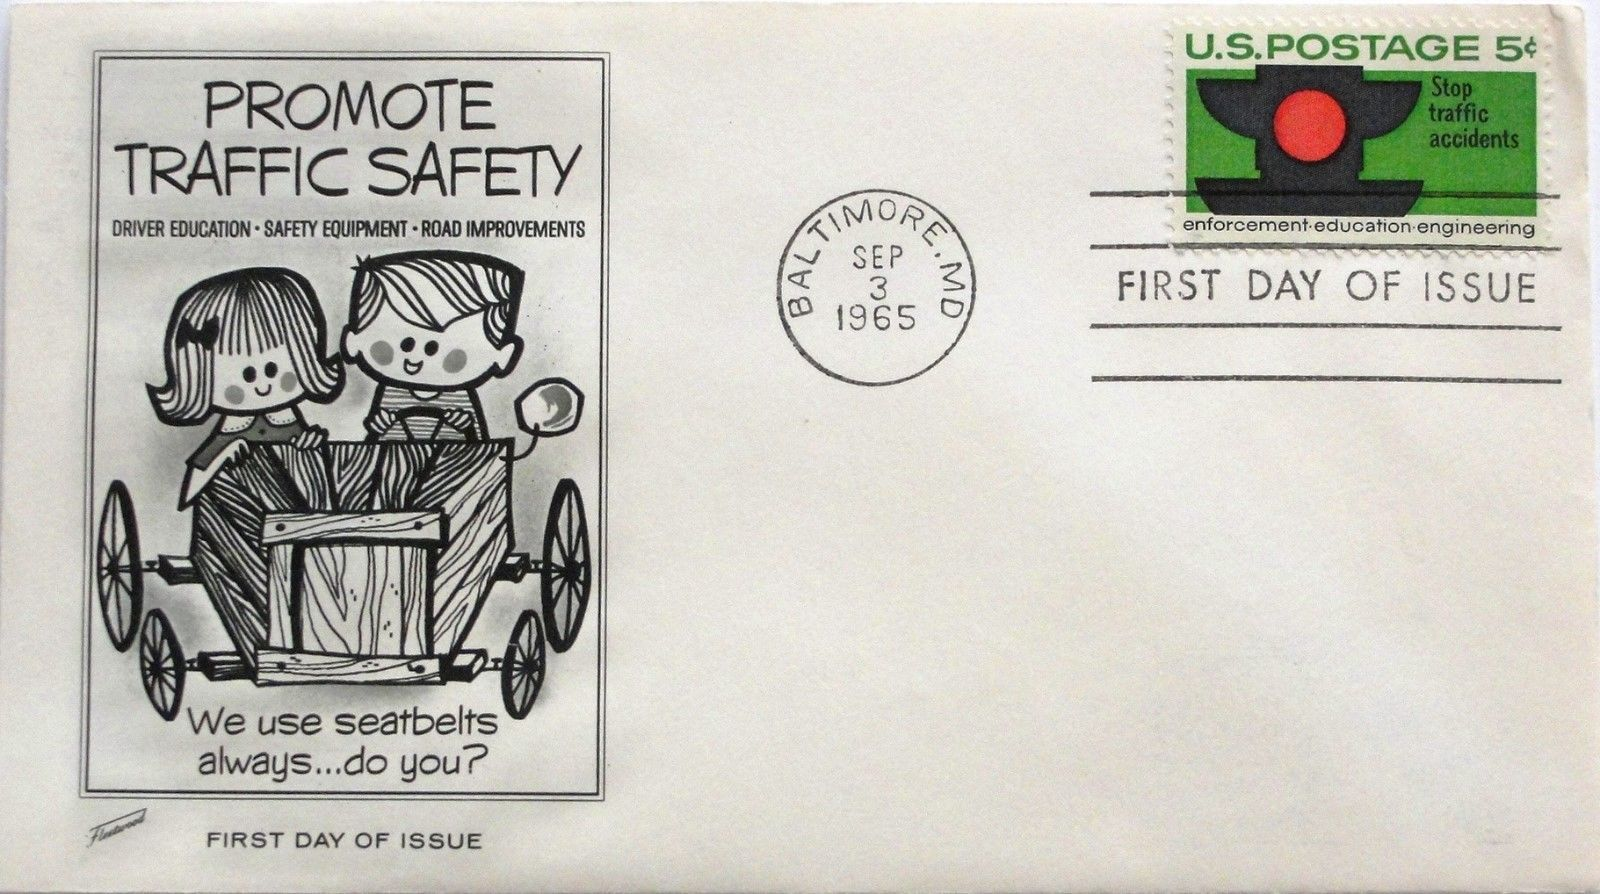 September 3, 1965 First Day of Issue, Fleetwood Cover, Traffic Safety #53